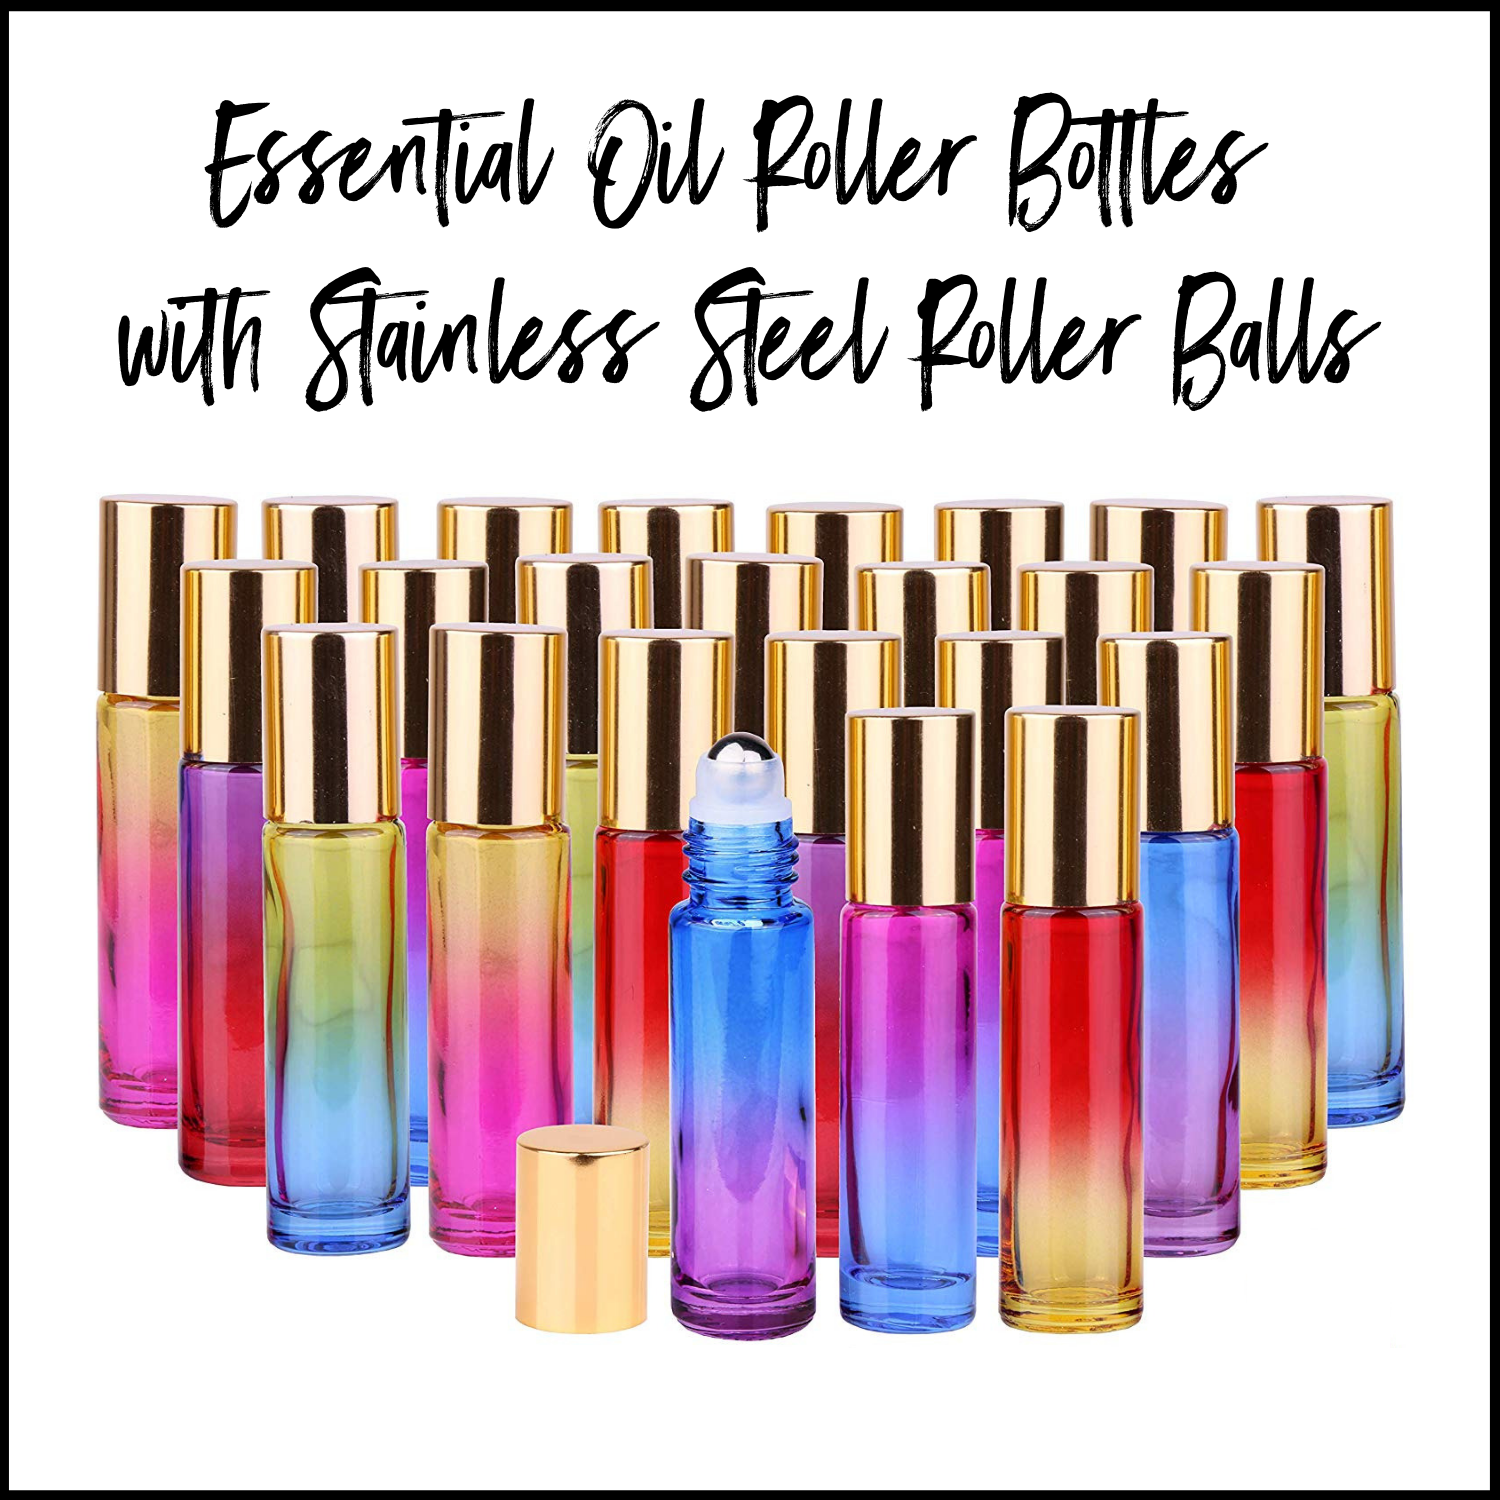 Glass Roller Bottles with Stainless Steel Roller Balls